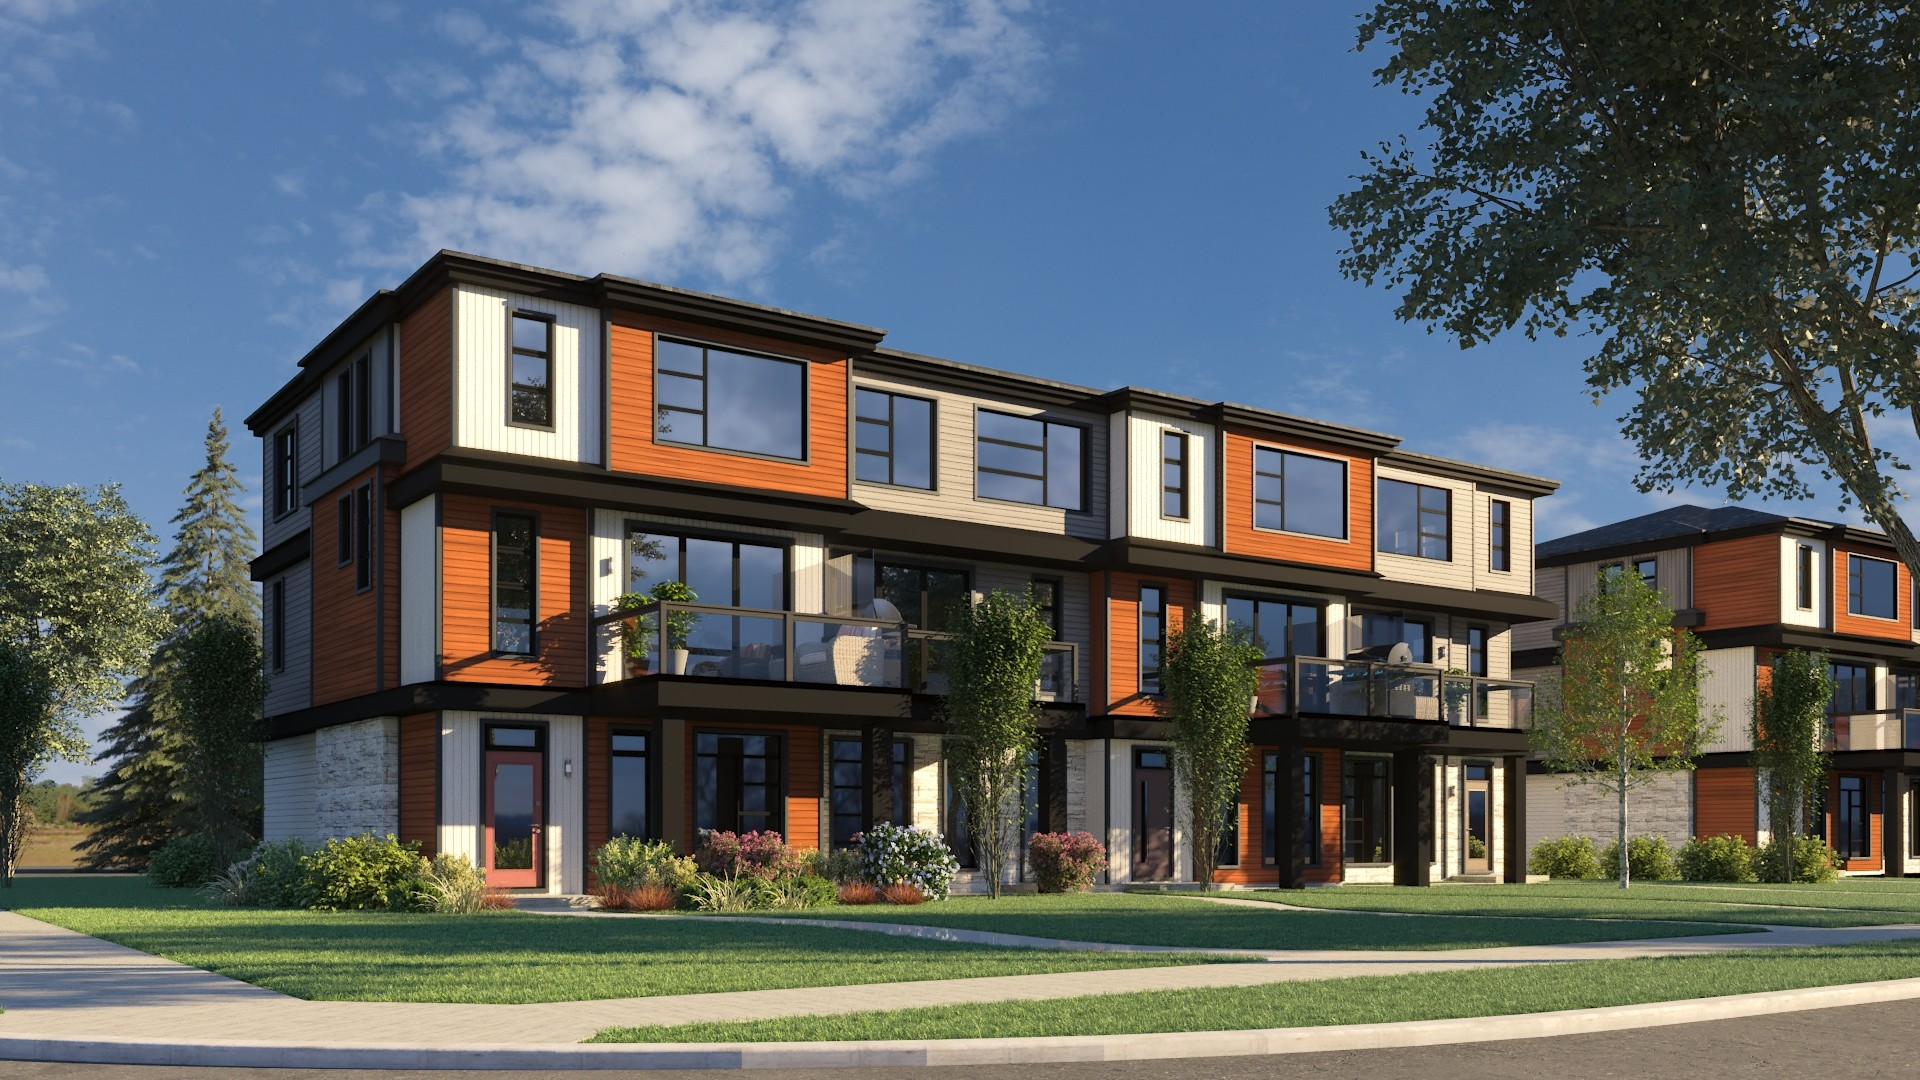 Exterior view of Caspia townhomes in south Edmonton